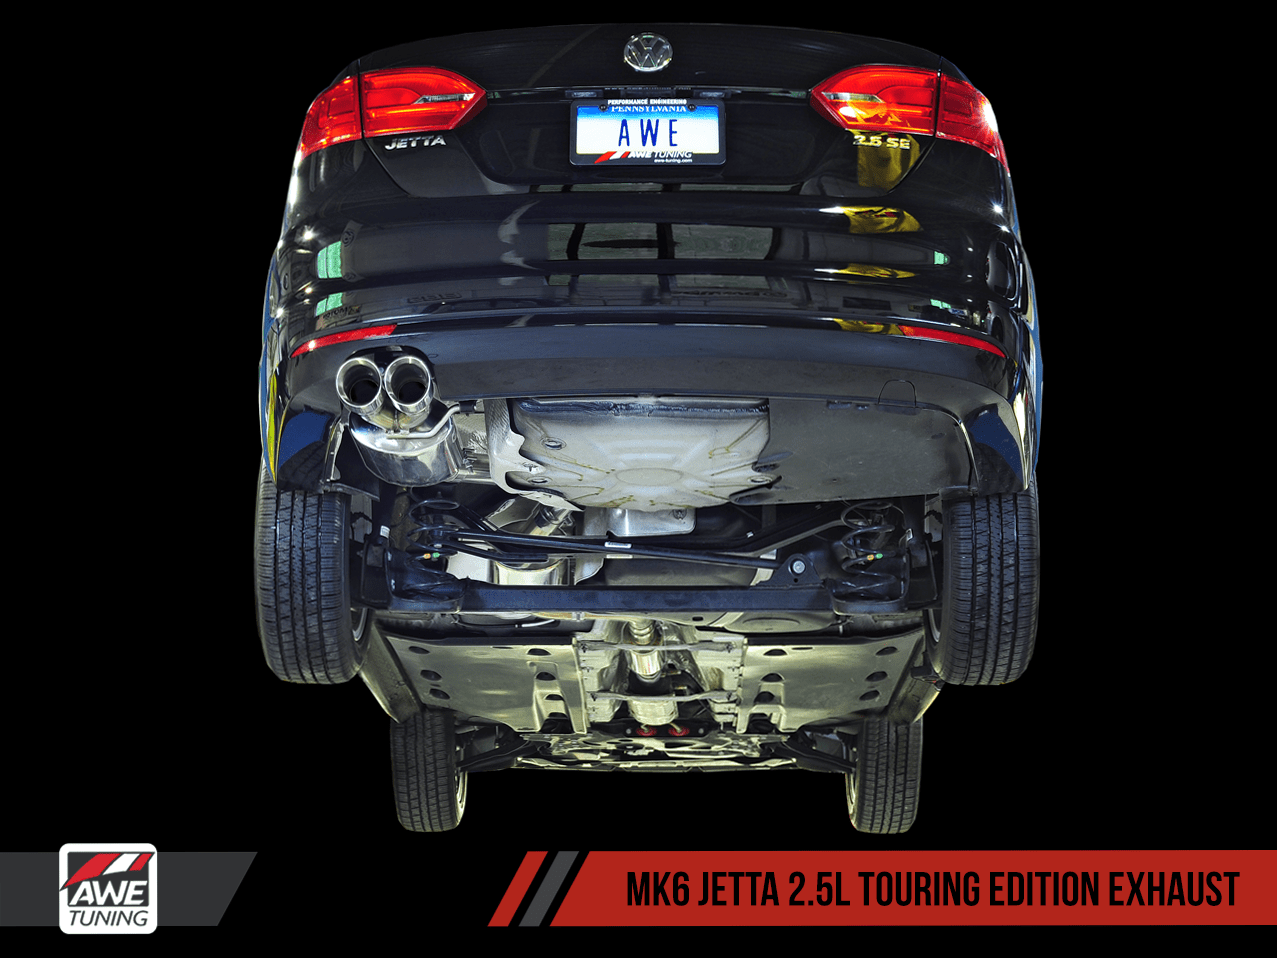 awe exhaust suite for mk6 jetta 2 5l awe